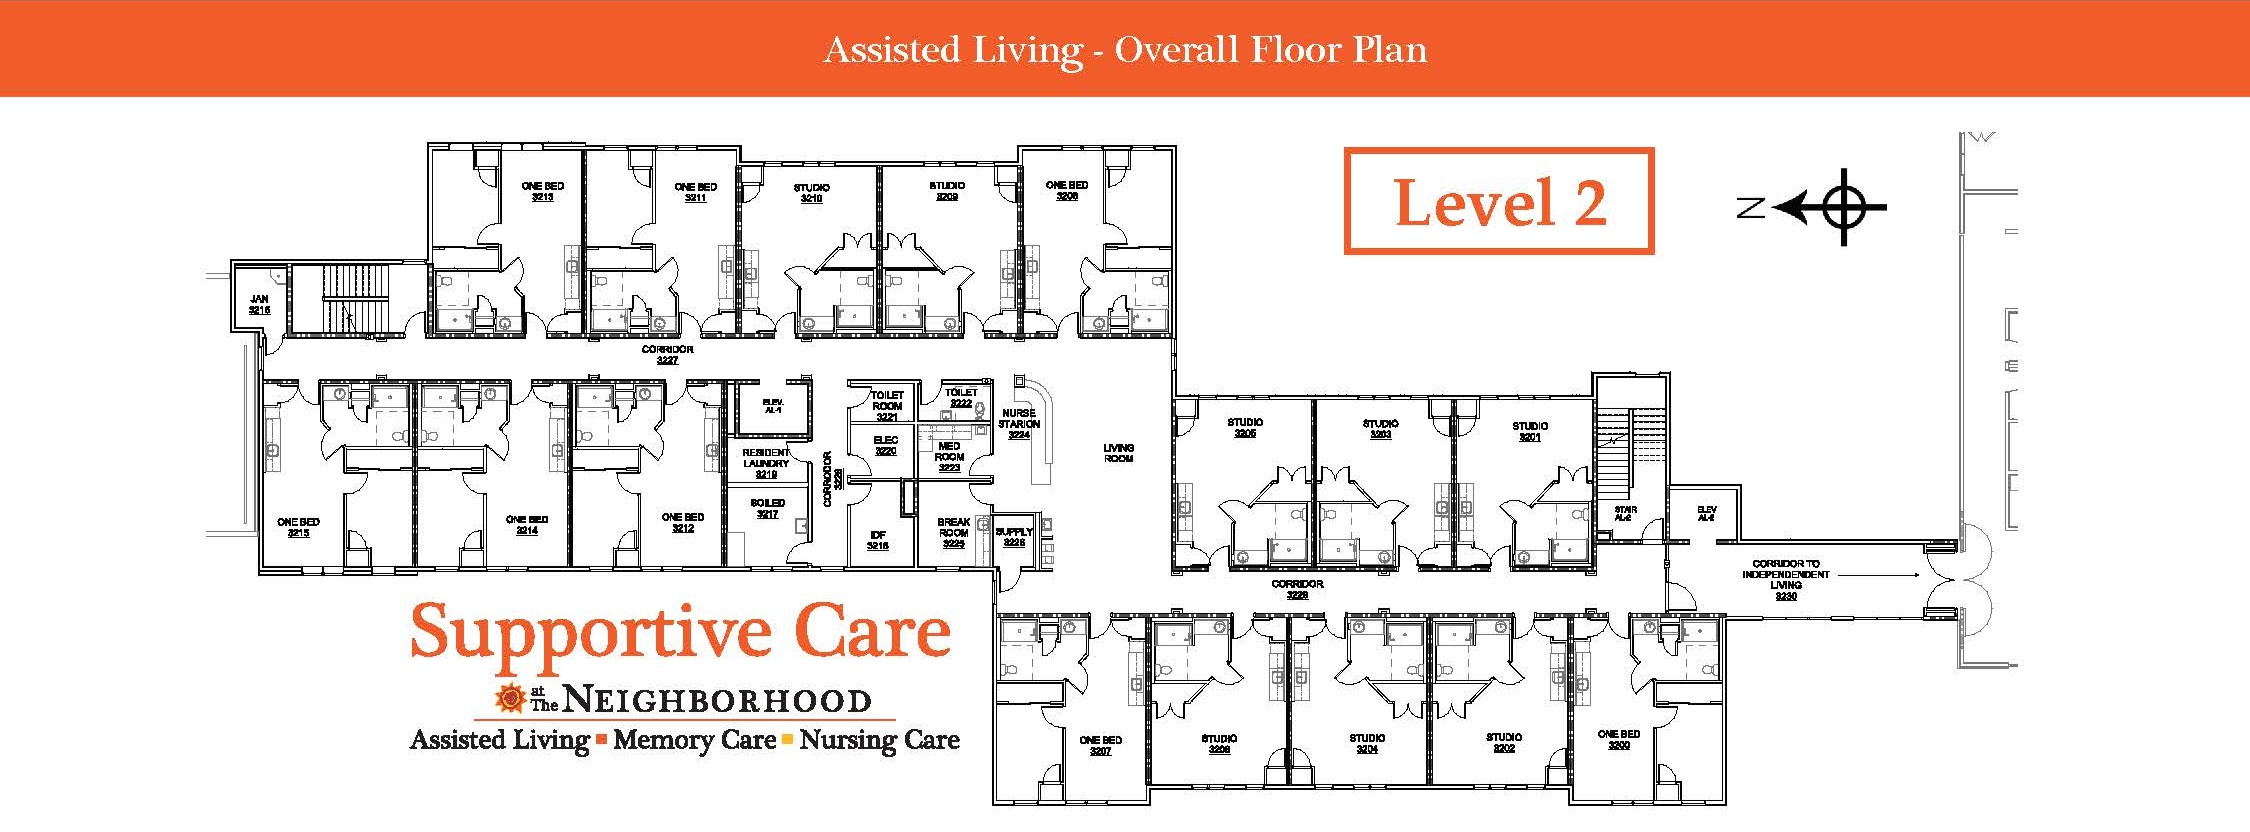 Assisted Living Level 2 Map